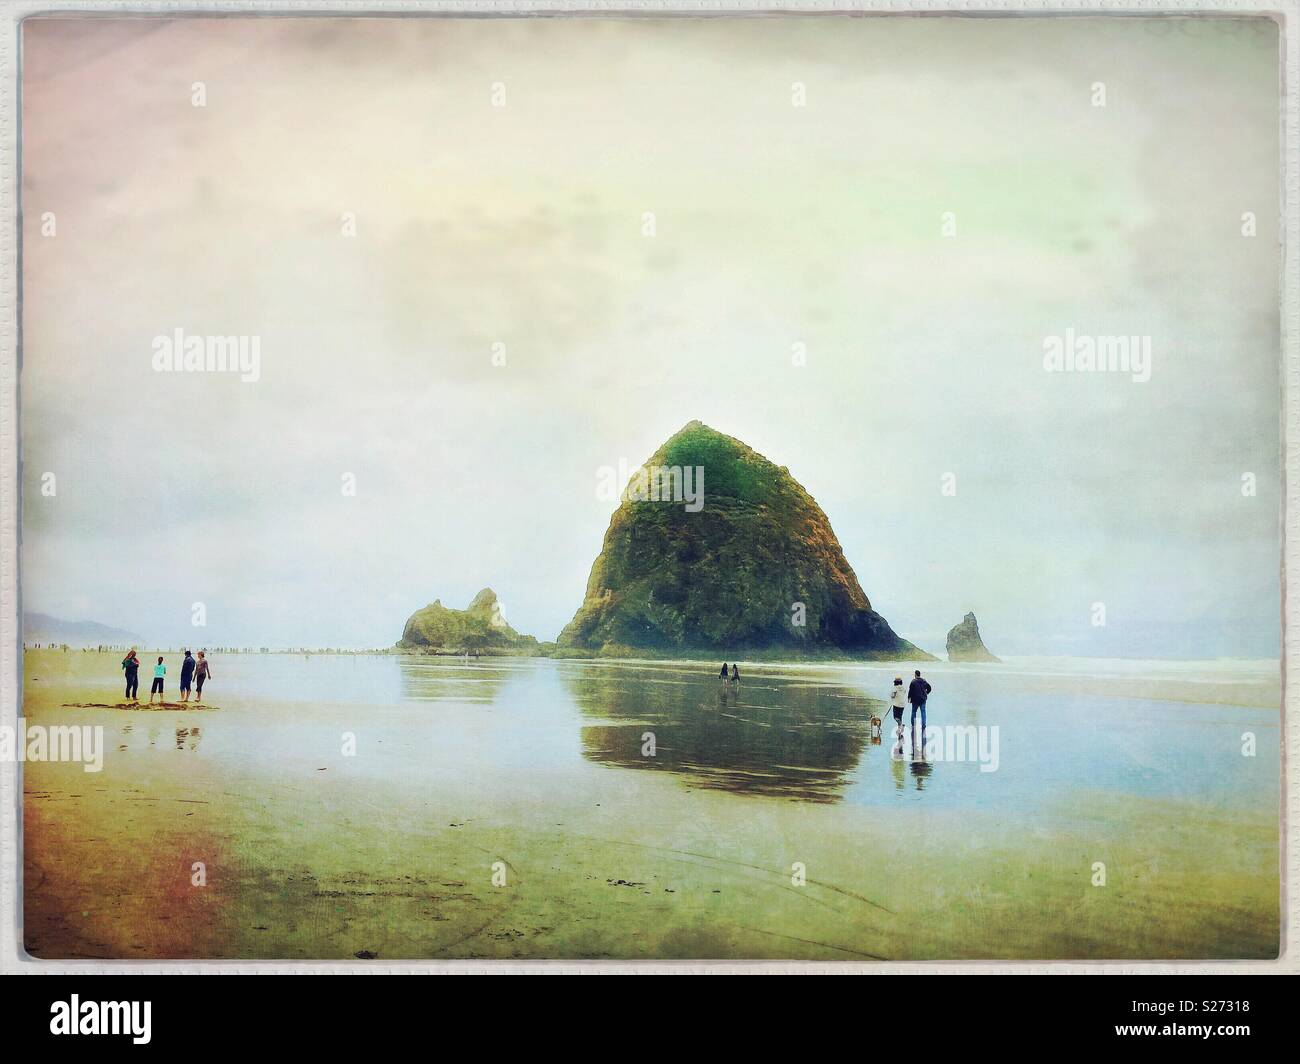 El Haystack Rock con wanderers a lo largo de la playa, Cannon Beach, Oregon, USA. Imagen De Stock